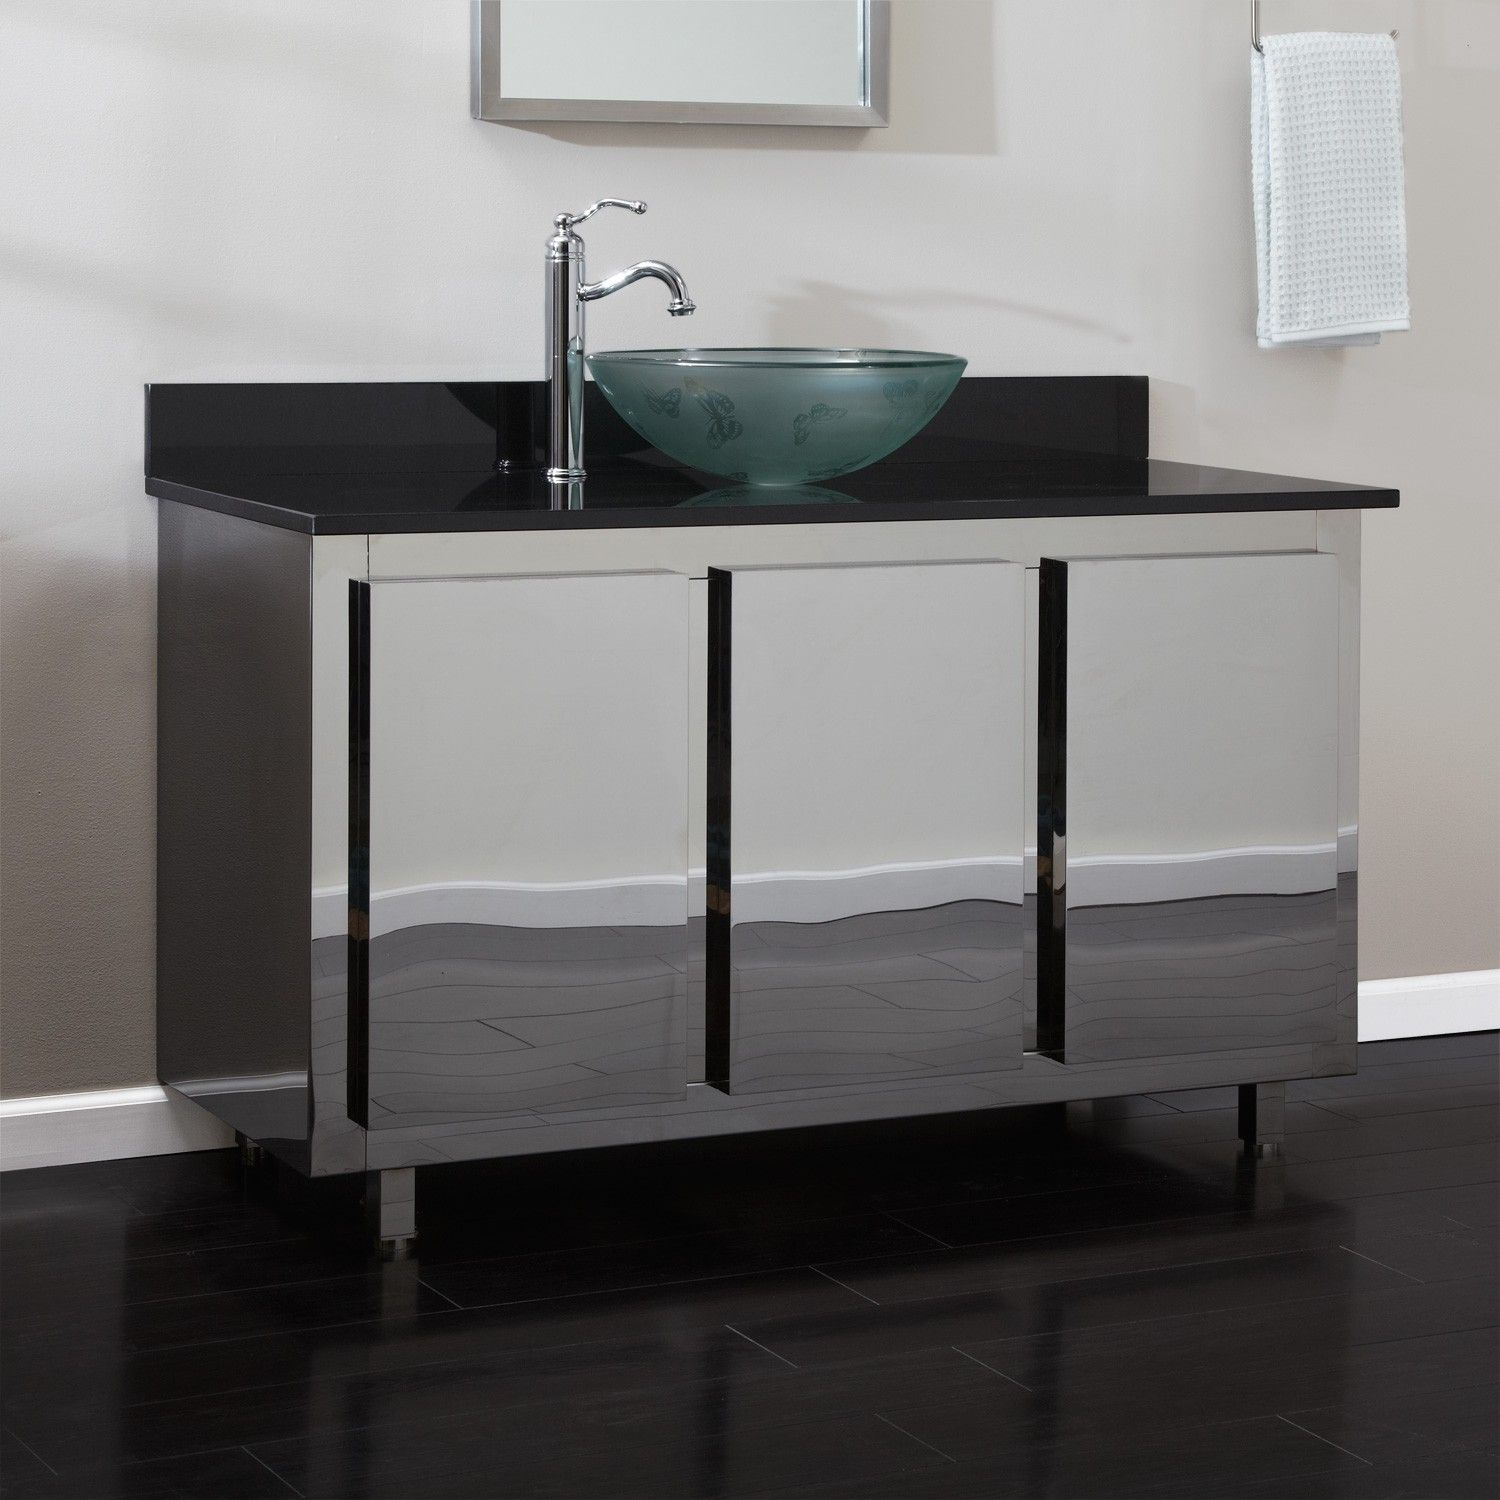 Stainless Steel Bathroom Vanity Vanities Vessel Sink 48 Landen